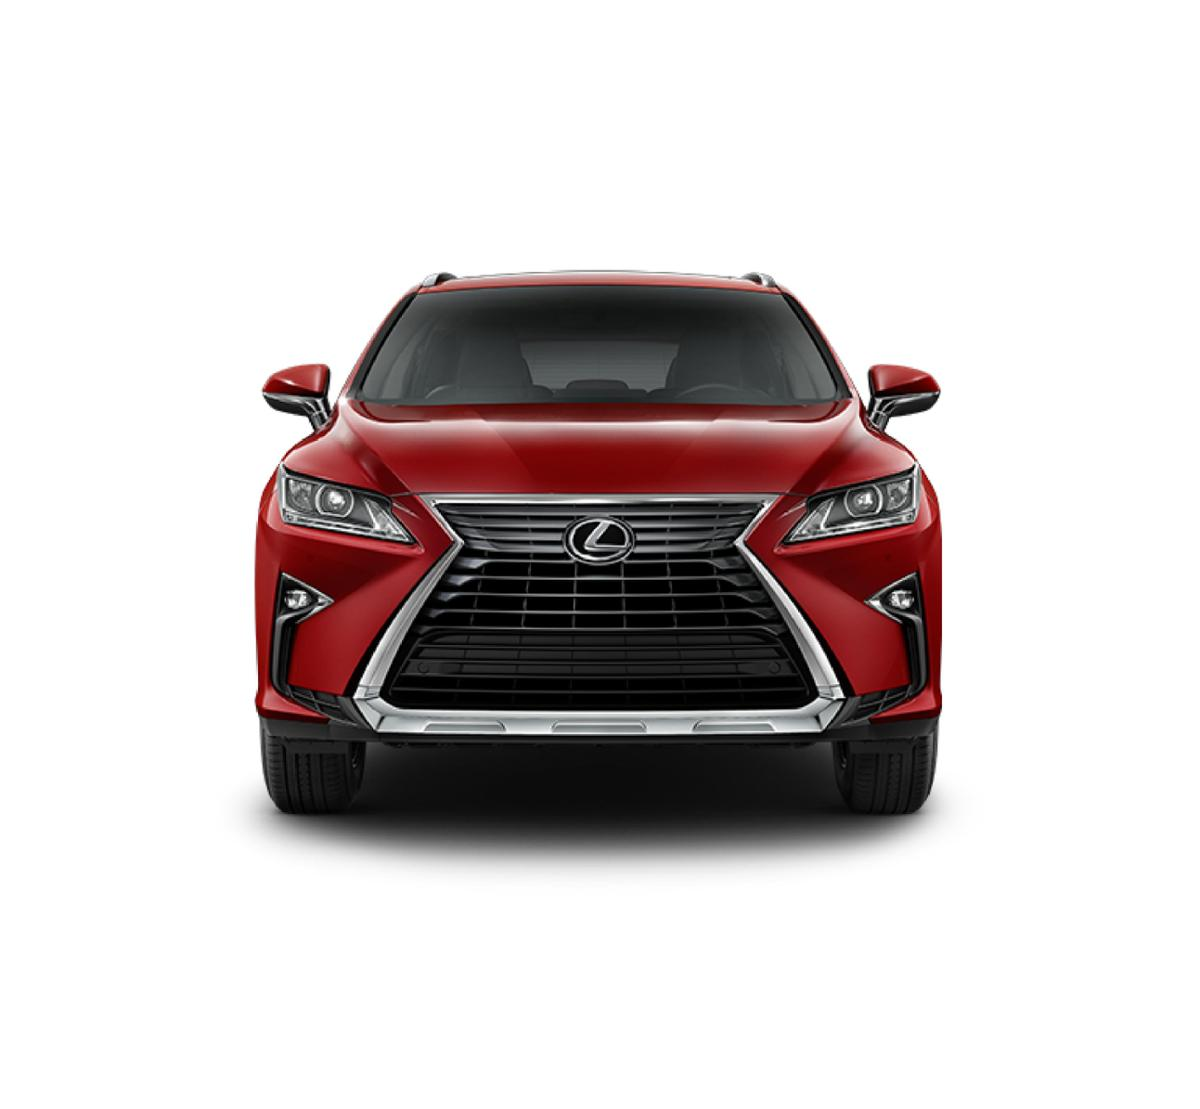 New 2019 Lexus RX 350L (Matador Red Mica) for Sale in ...